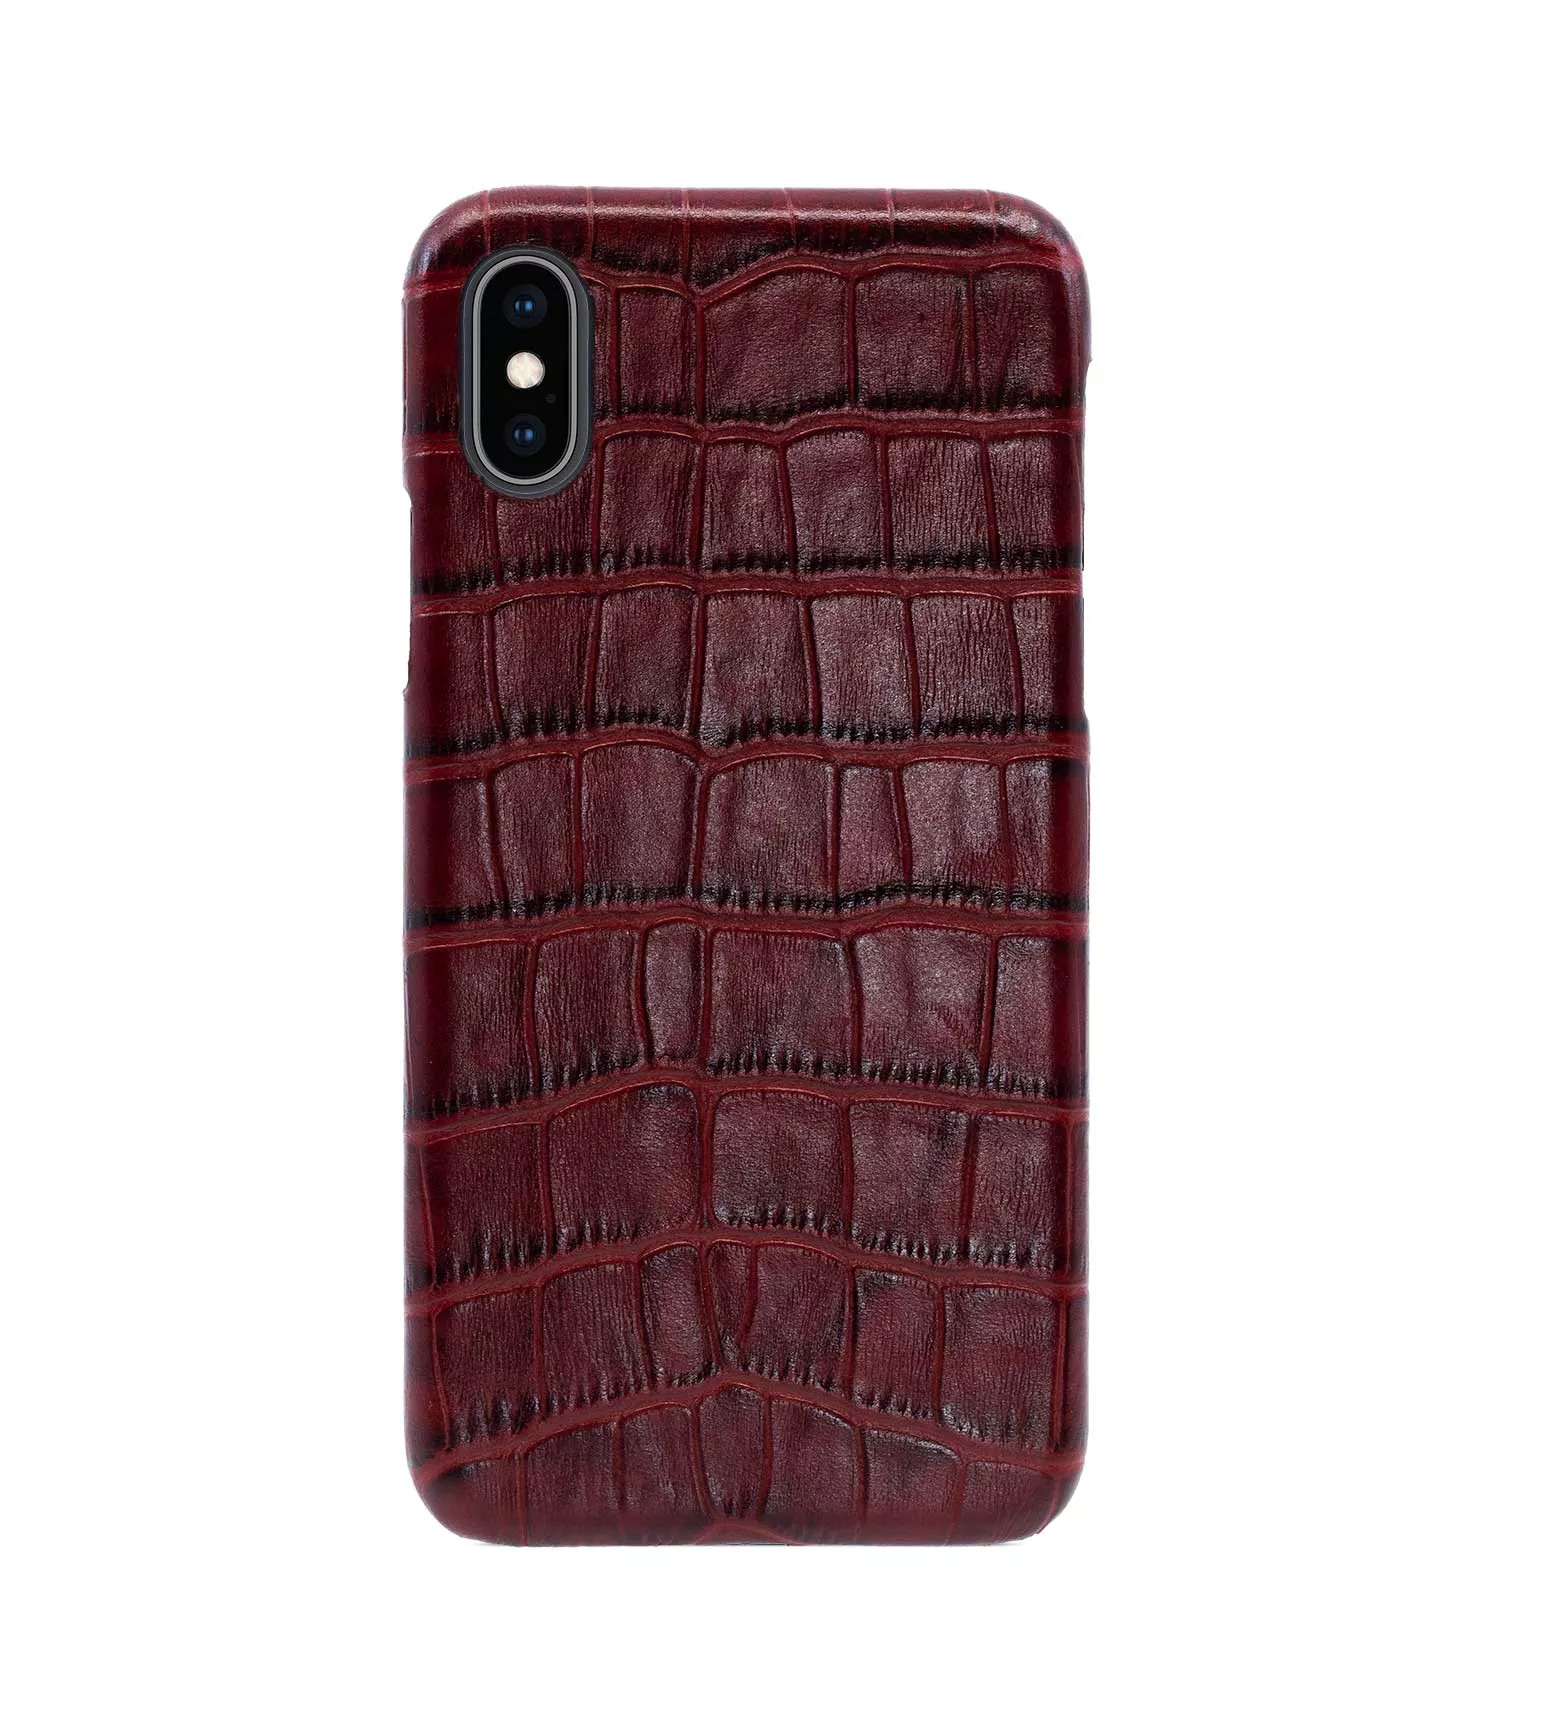 Купить Чехол Croco Leather Case для iPhone X/XS - Бургундский (Burgundy) в Сочи